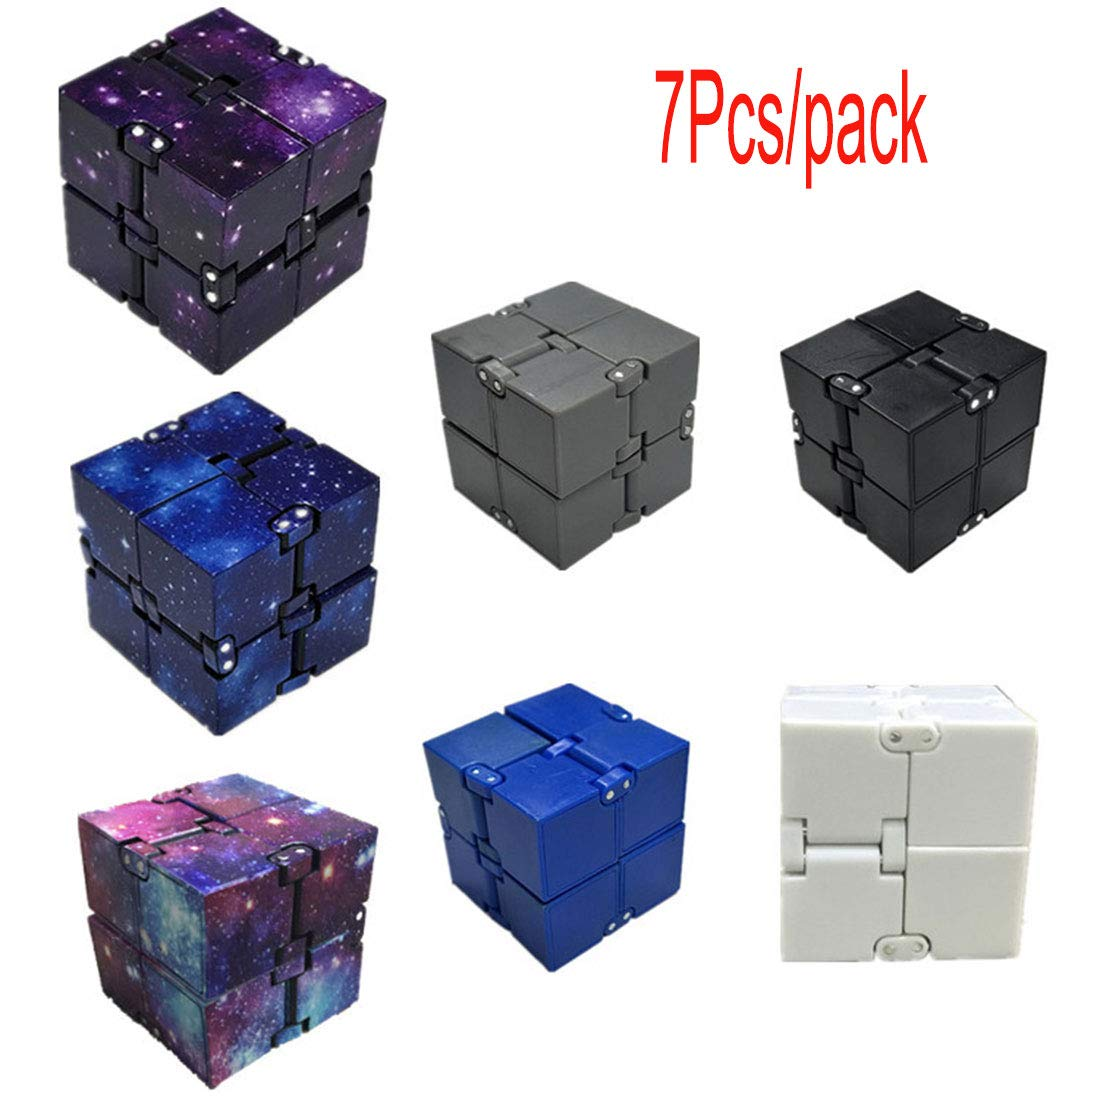 Fadfed FInfinity Cube Fidget Cube Desk Toy - Premium Quality Aluminum Infinite Magic Cube with Exclusive Case, Sturdy, Heavy, Relieve Stress and Anxiety, for ADD, ADHD, OCD